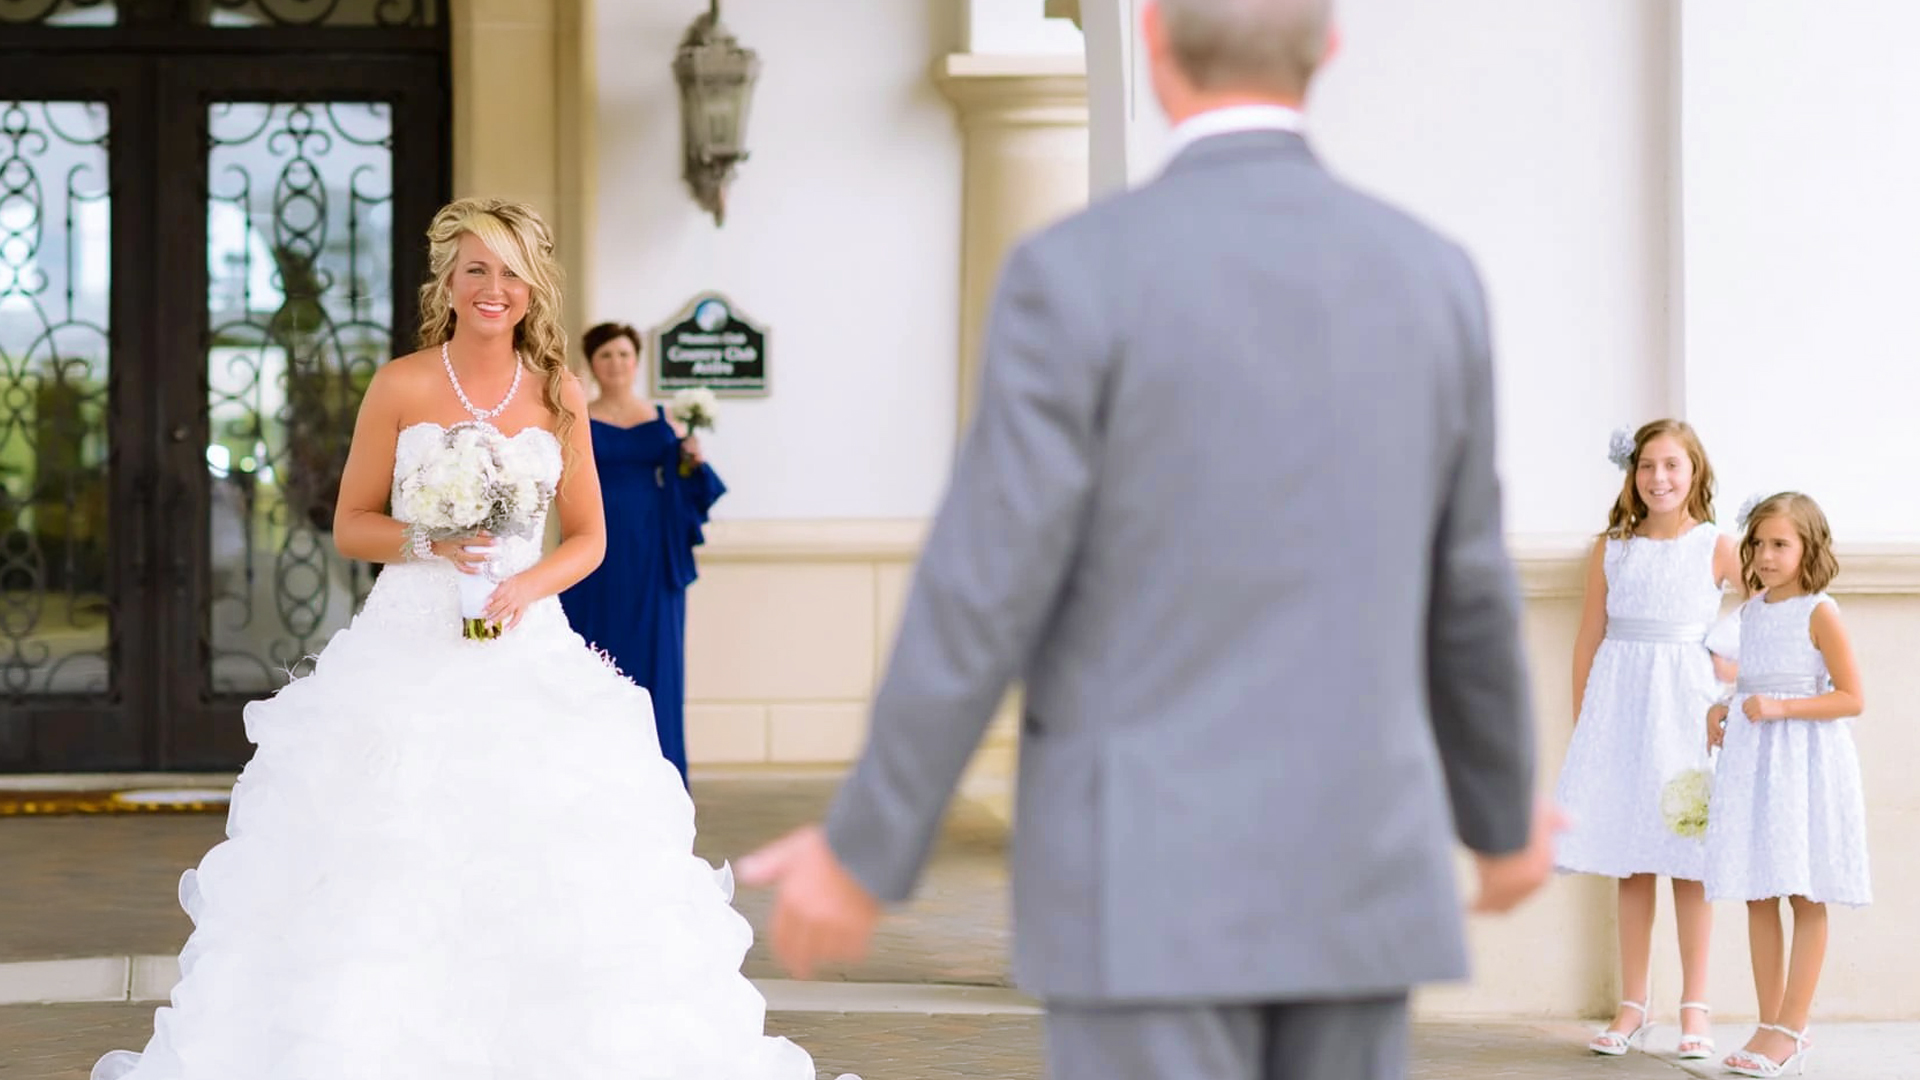 The Pros And Cons Of First Look Photos - Let Us Help You Decide, If You Are Not Sure